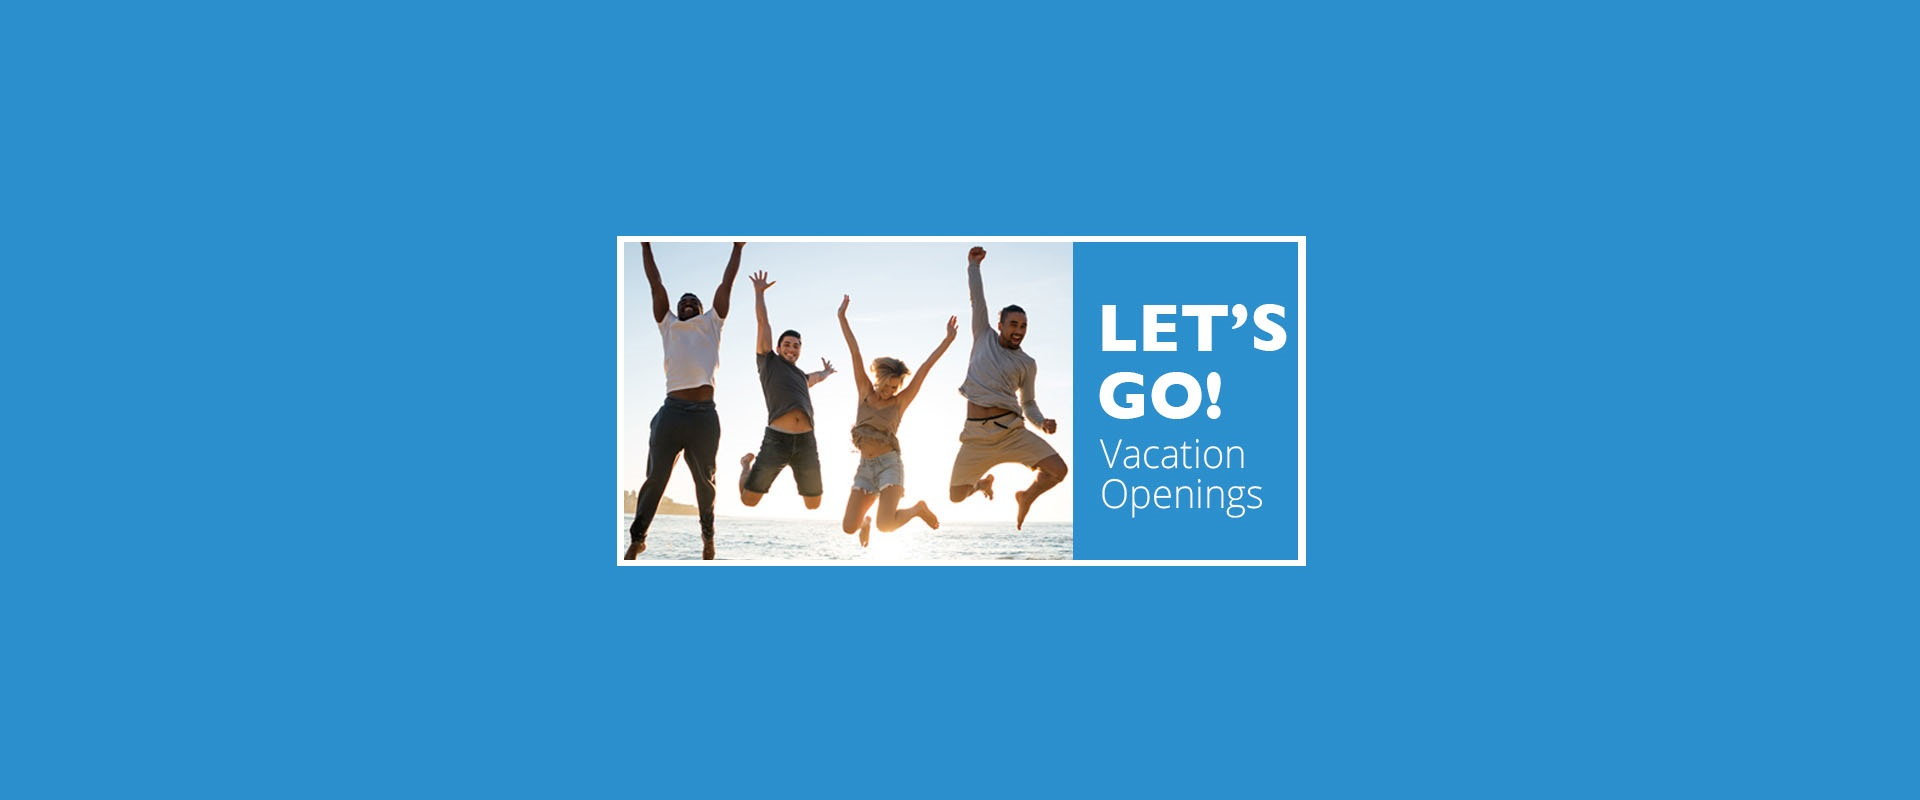 Lets-Go-Vacation-Openings-Banner